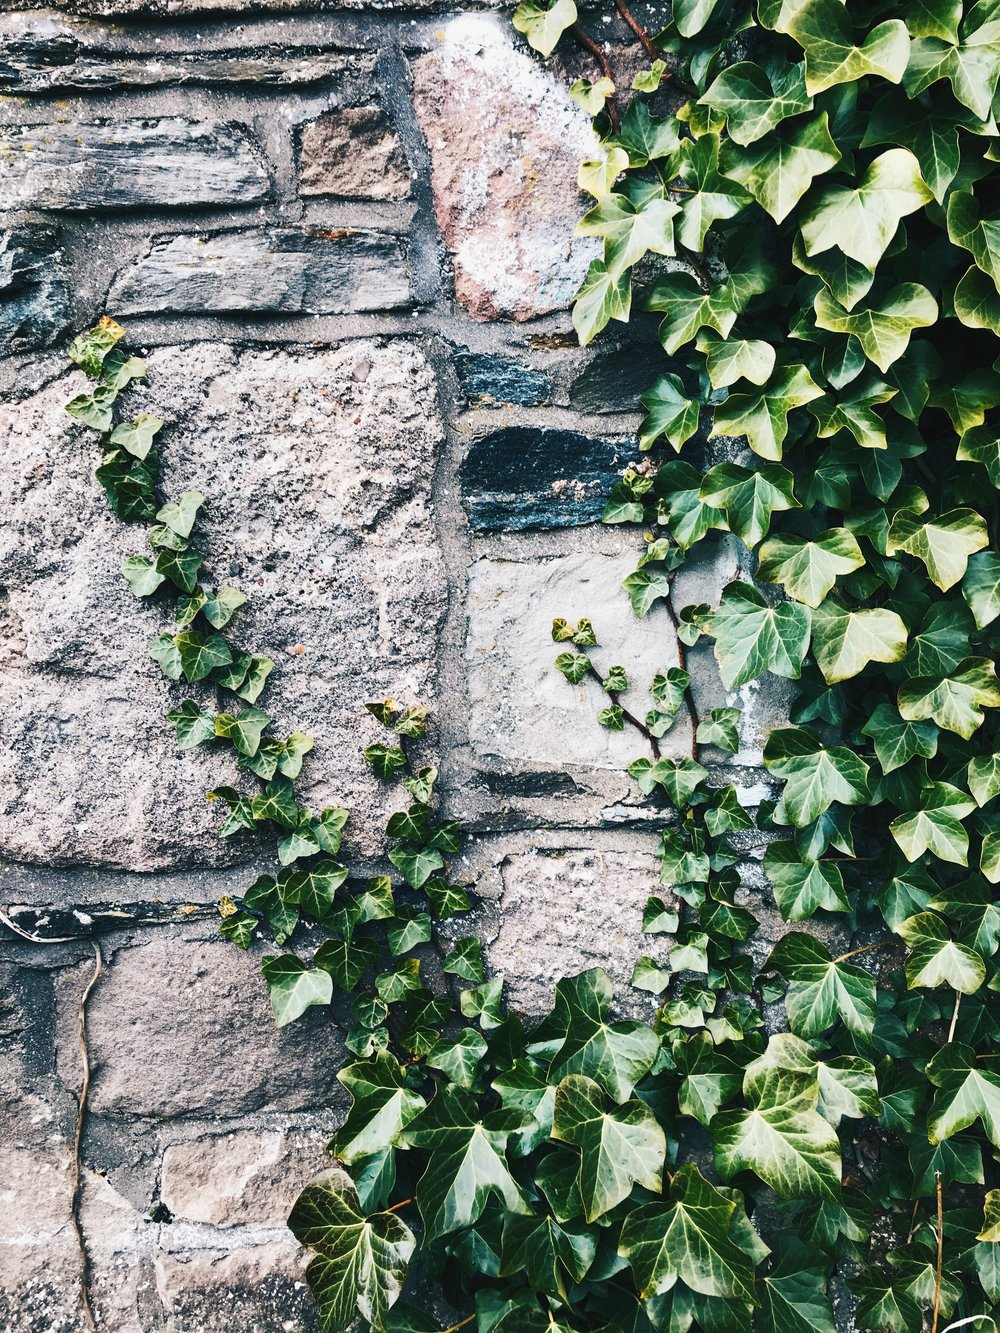 Ivy is gradually taking over the tower walls